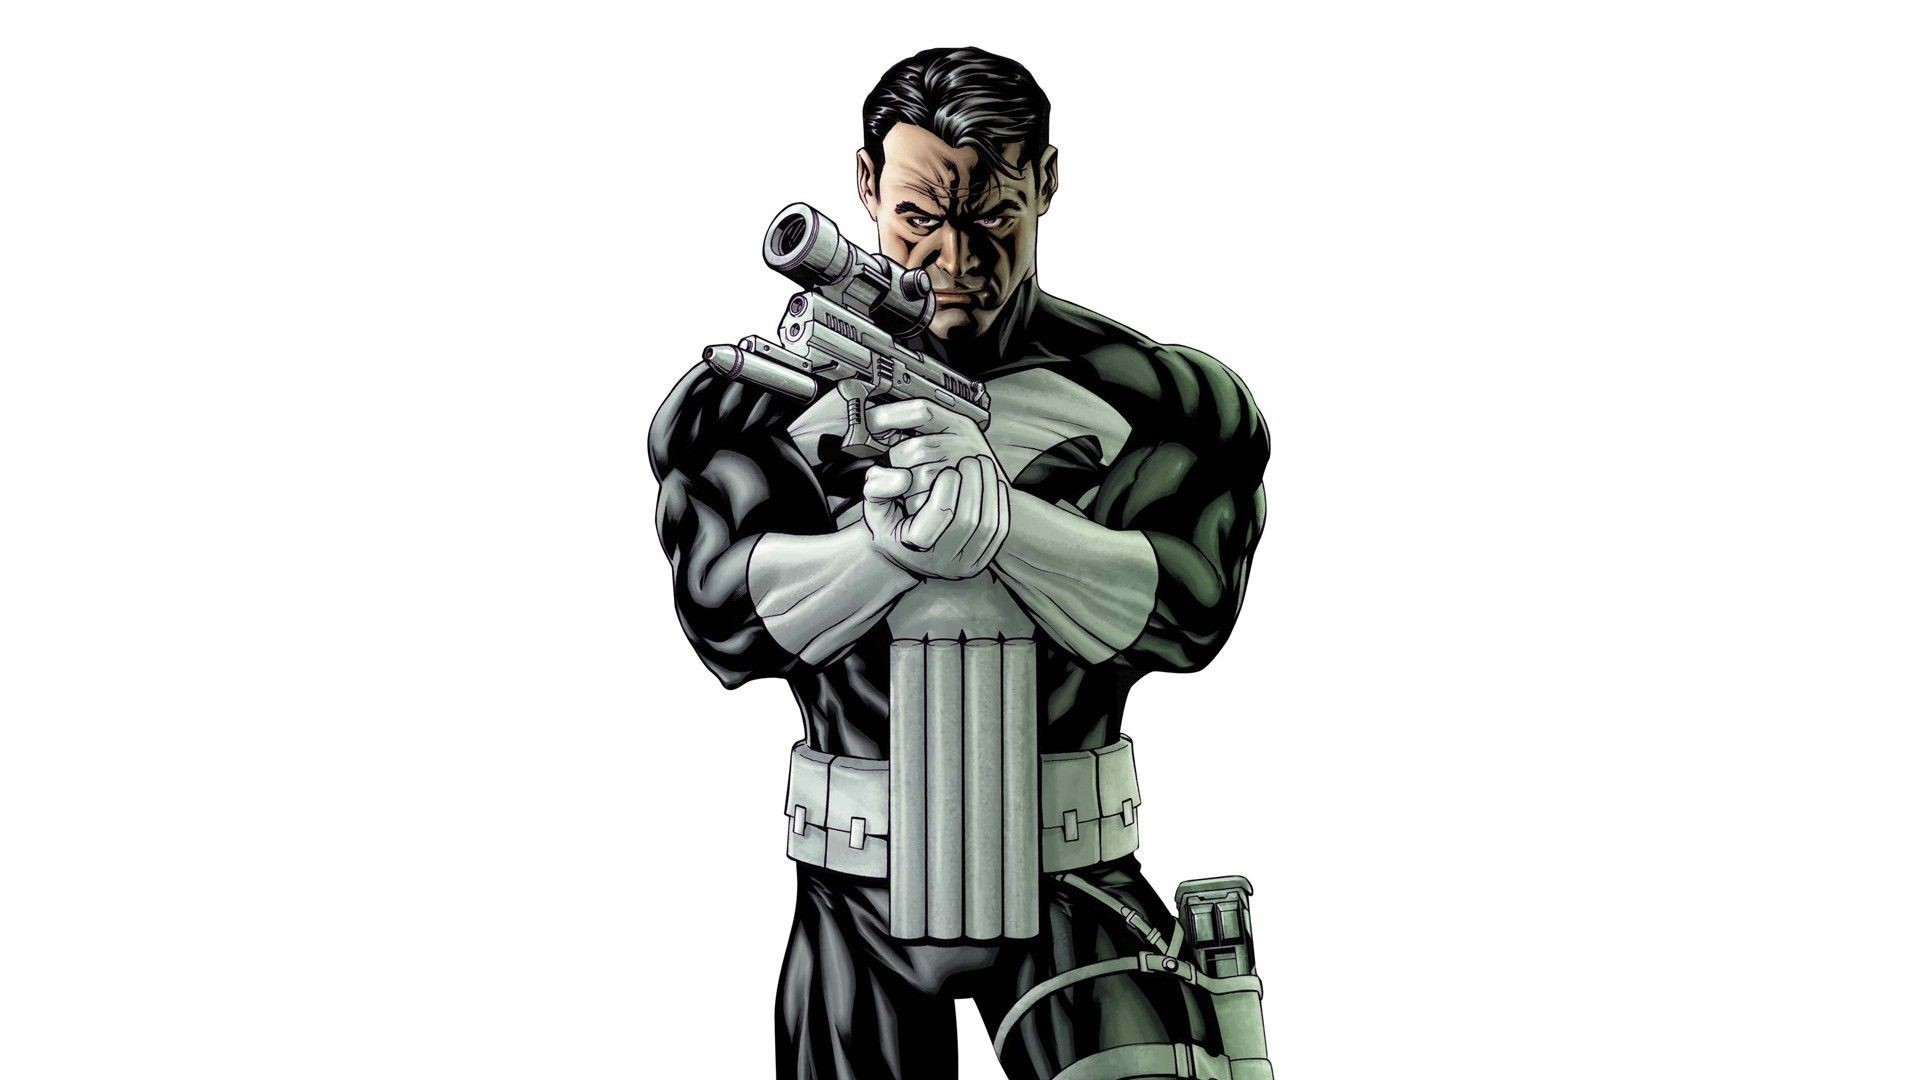 1920x1080 Punisher HD Wallpaper